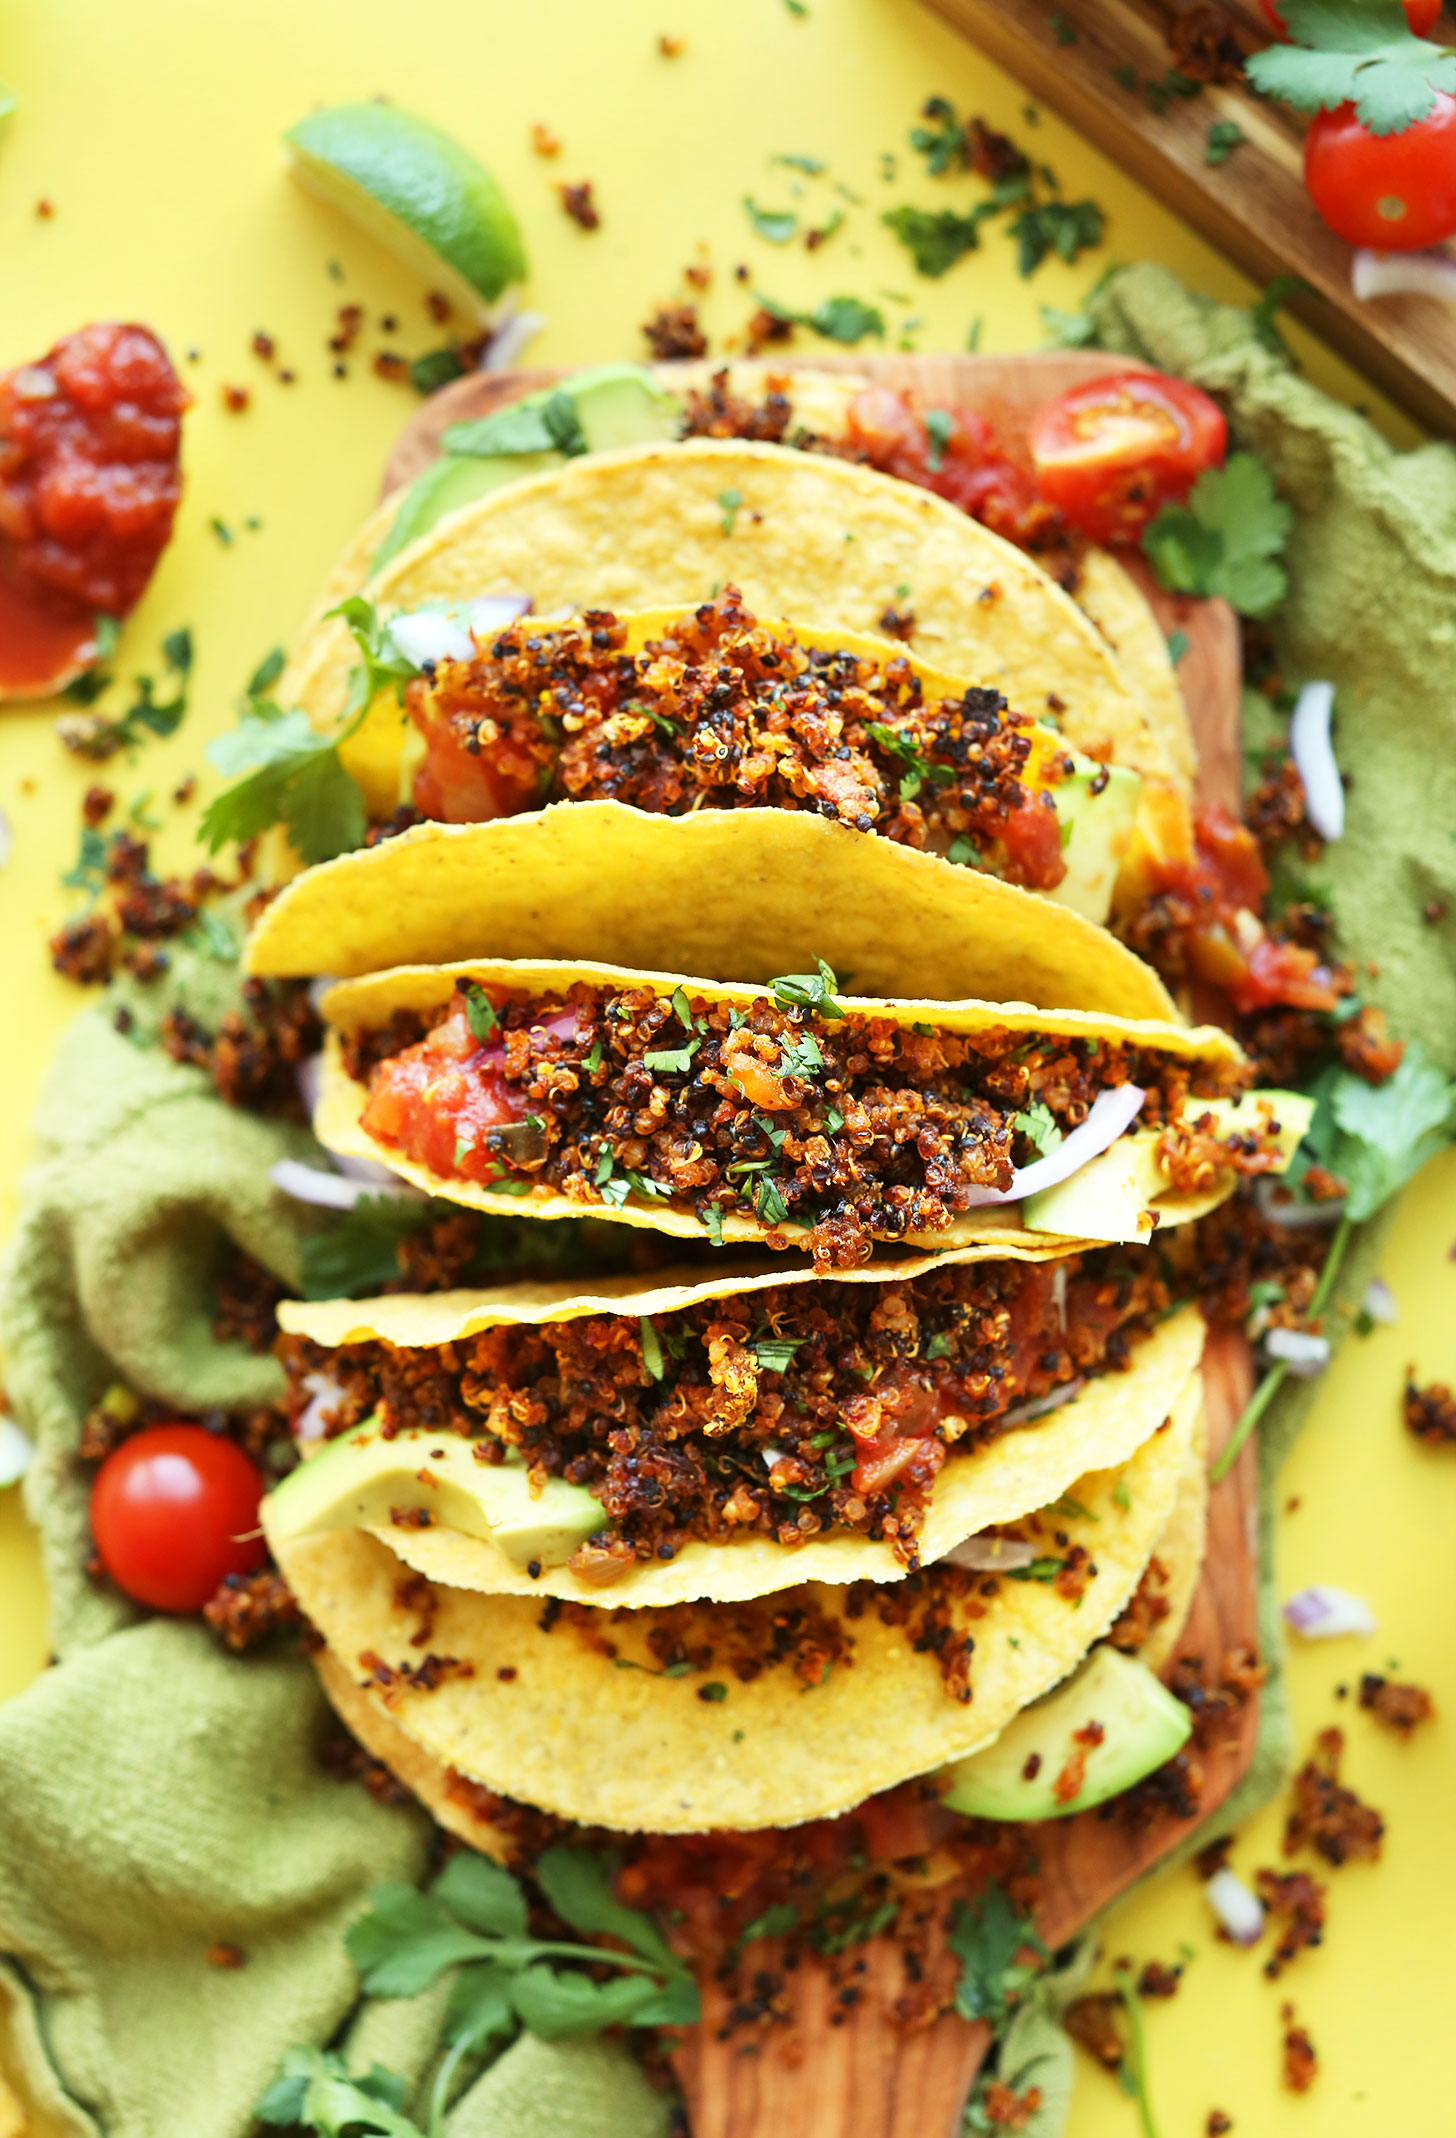 How to make healthy tacos with ground beef